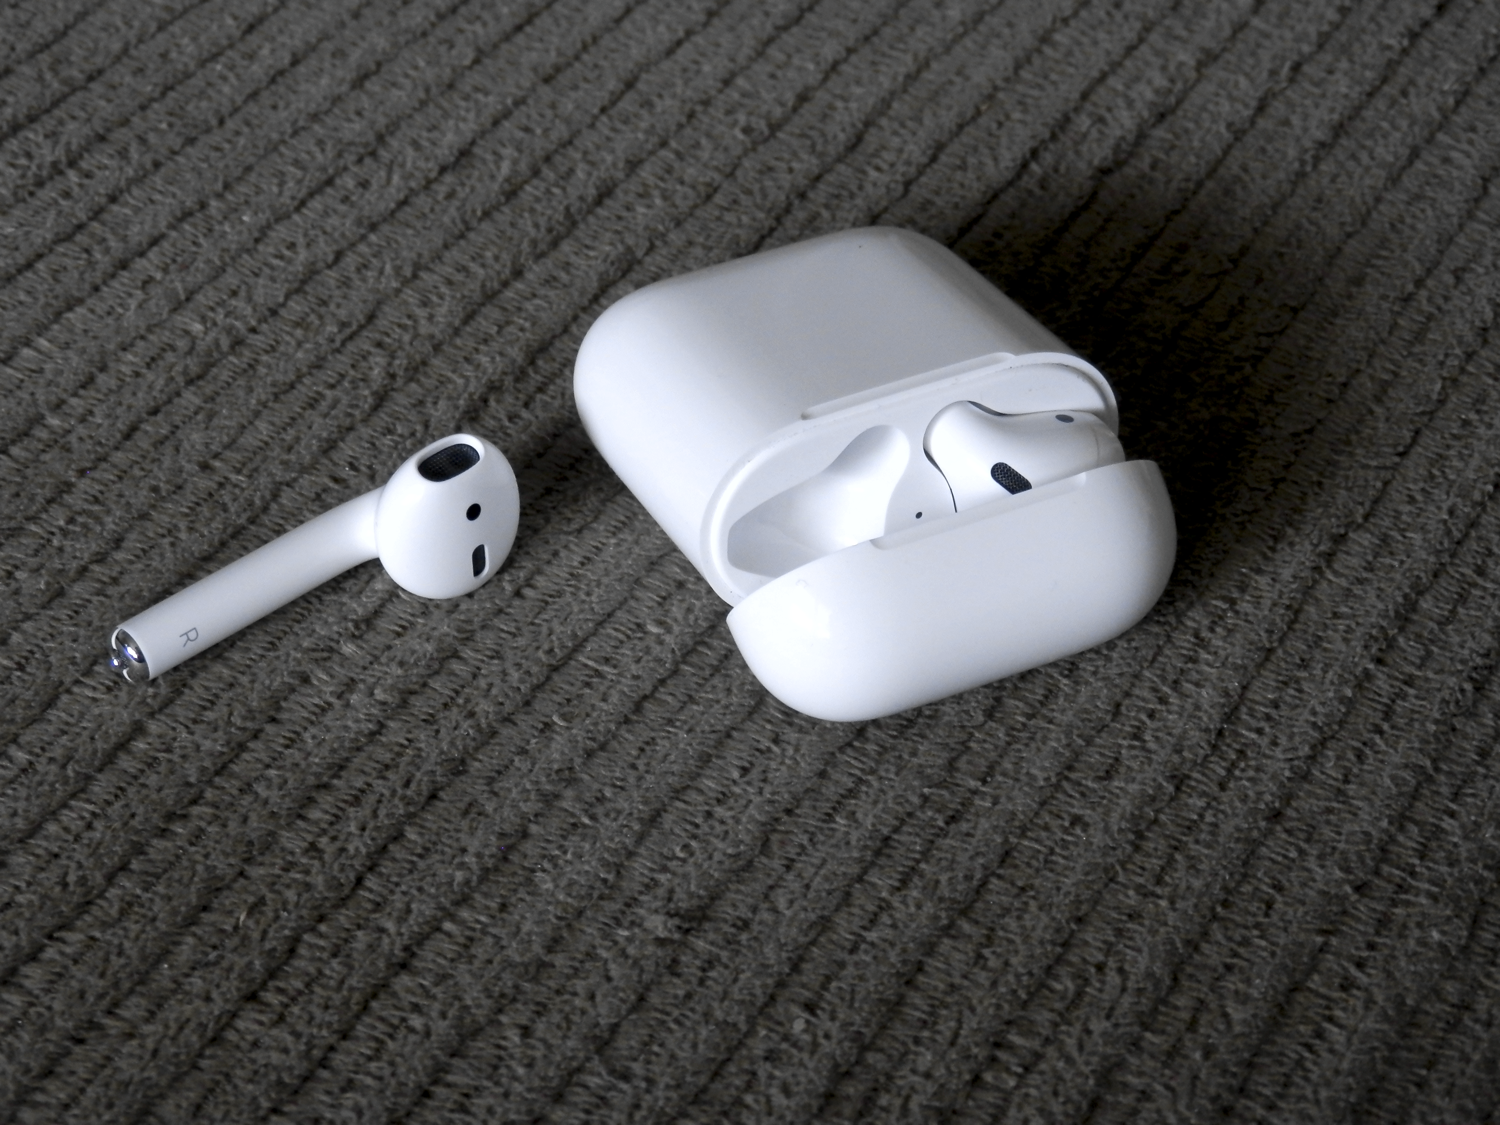 d1c4d31aced Future AirPods might gain advanced noise cancellation sans unwanted  occlusion effects